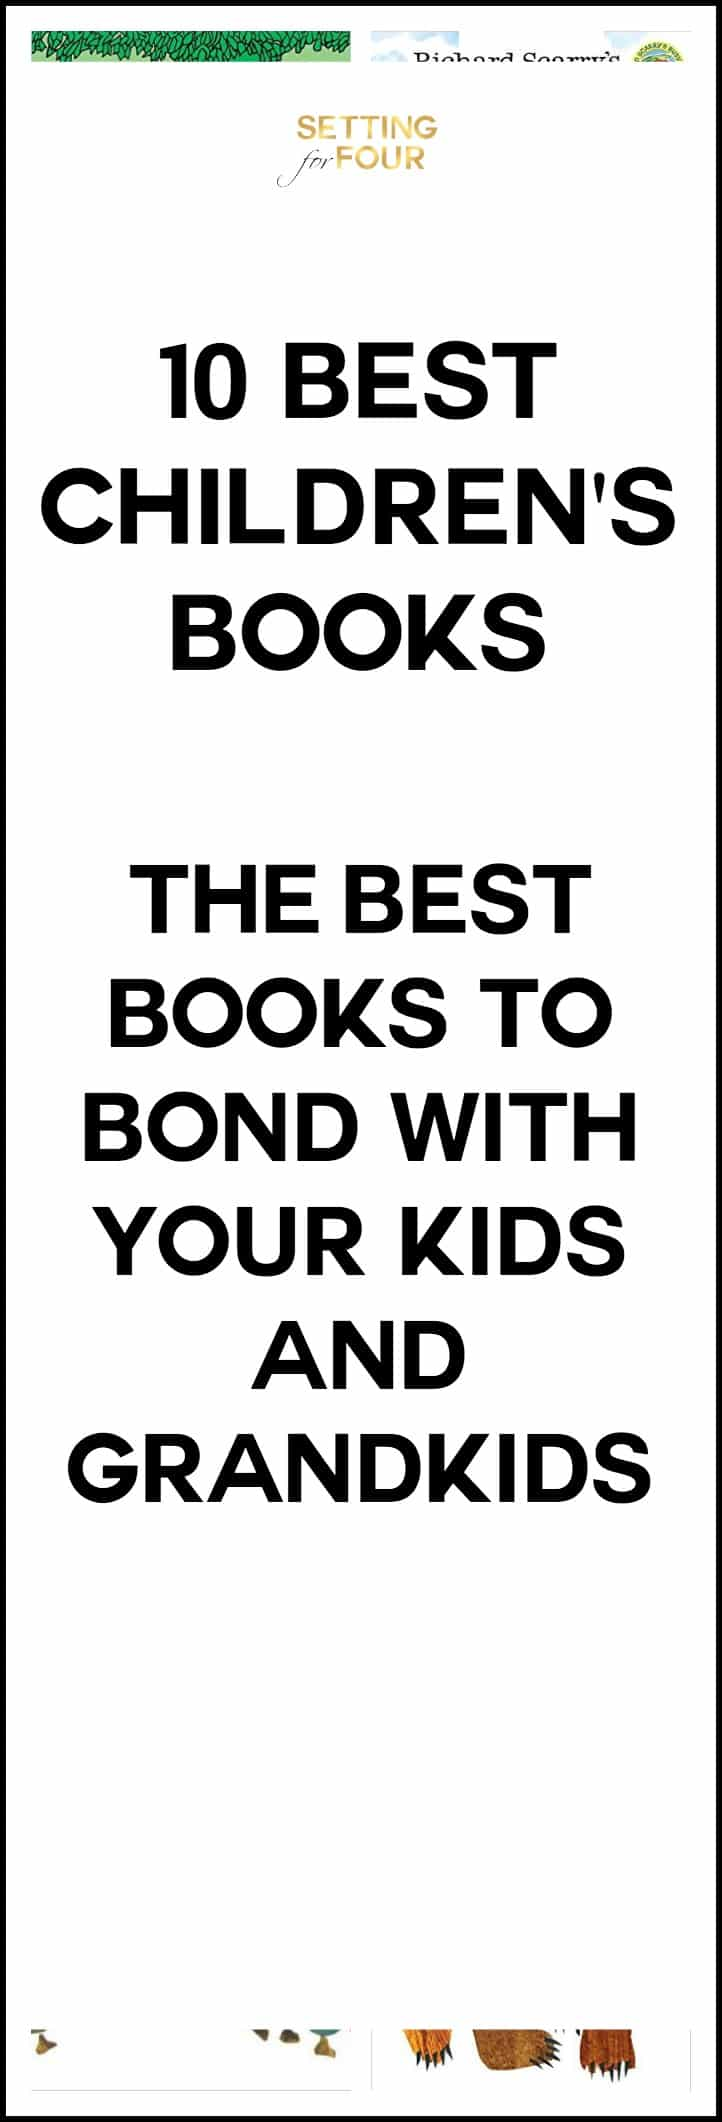 10 + Best Kids Books For Bonding And Learning - these children's stories are an essential part of kids learning, stimulating their imagination and bonding with family members. They are timeless classics that are so fun to read with the kids - great gift ideas!